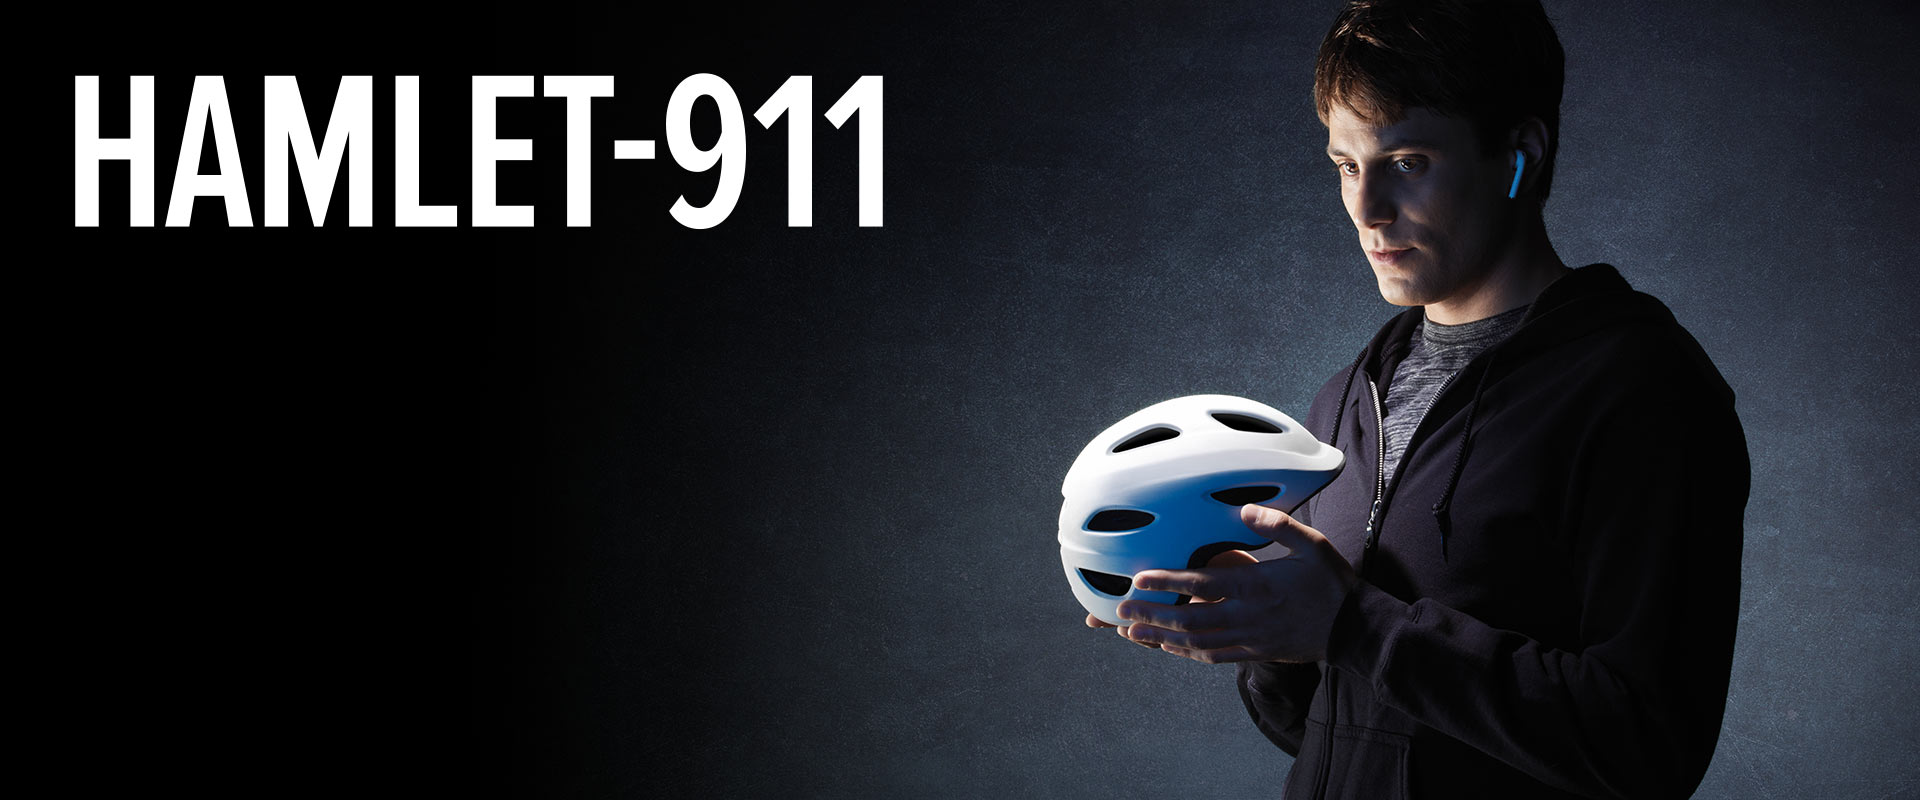 Image of a man holding a white bicycle helmet and staring at it like its a skull